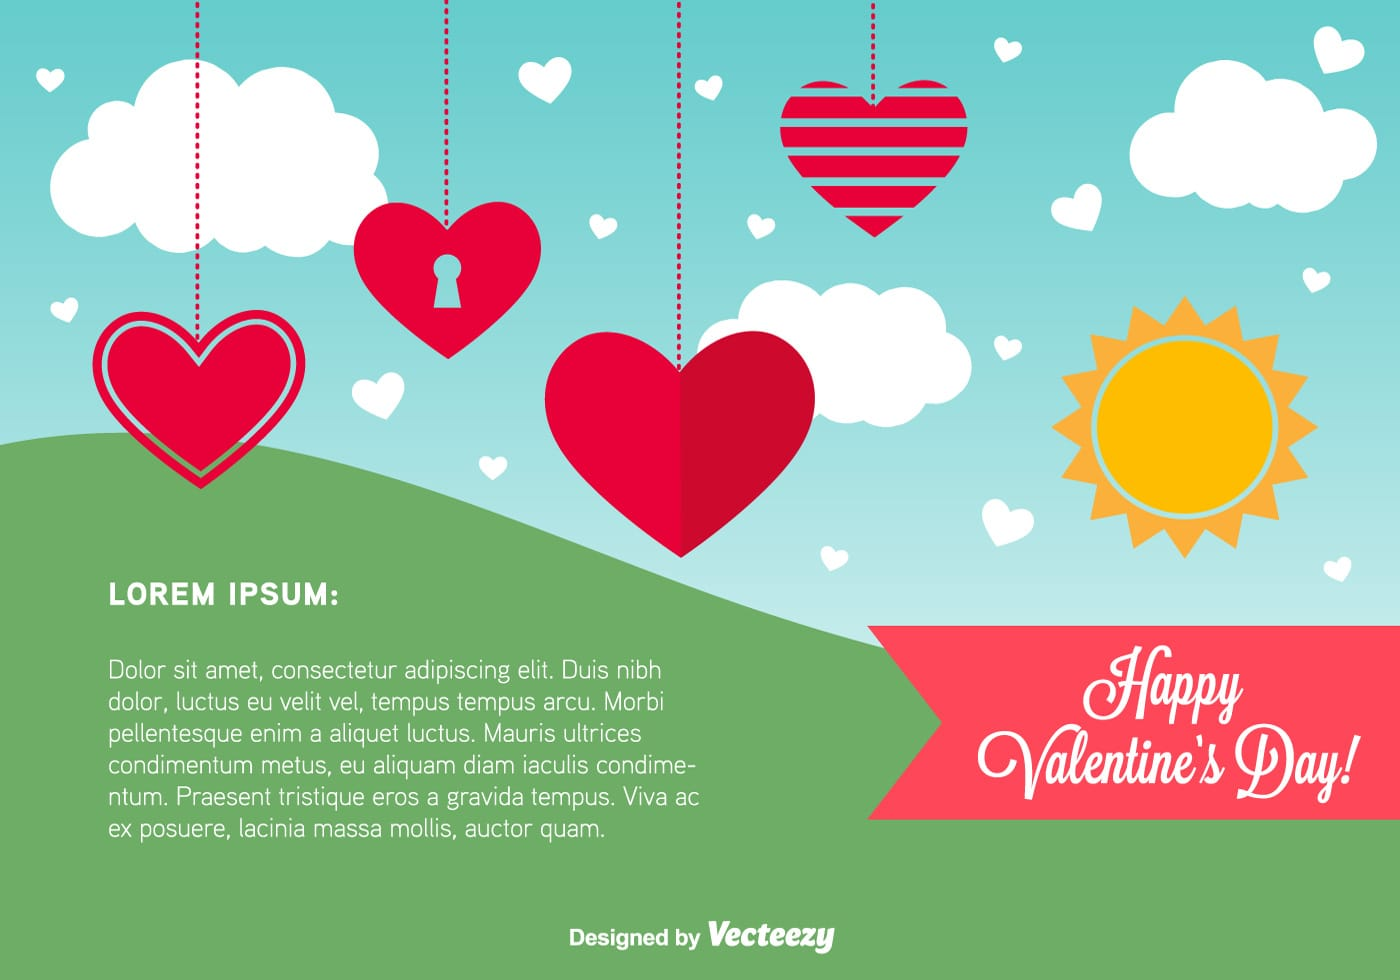 Happy Valentines Day Card Template Download Free Vector Art